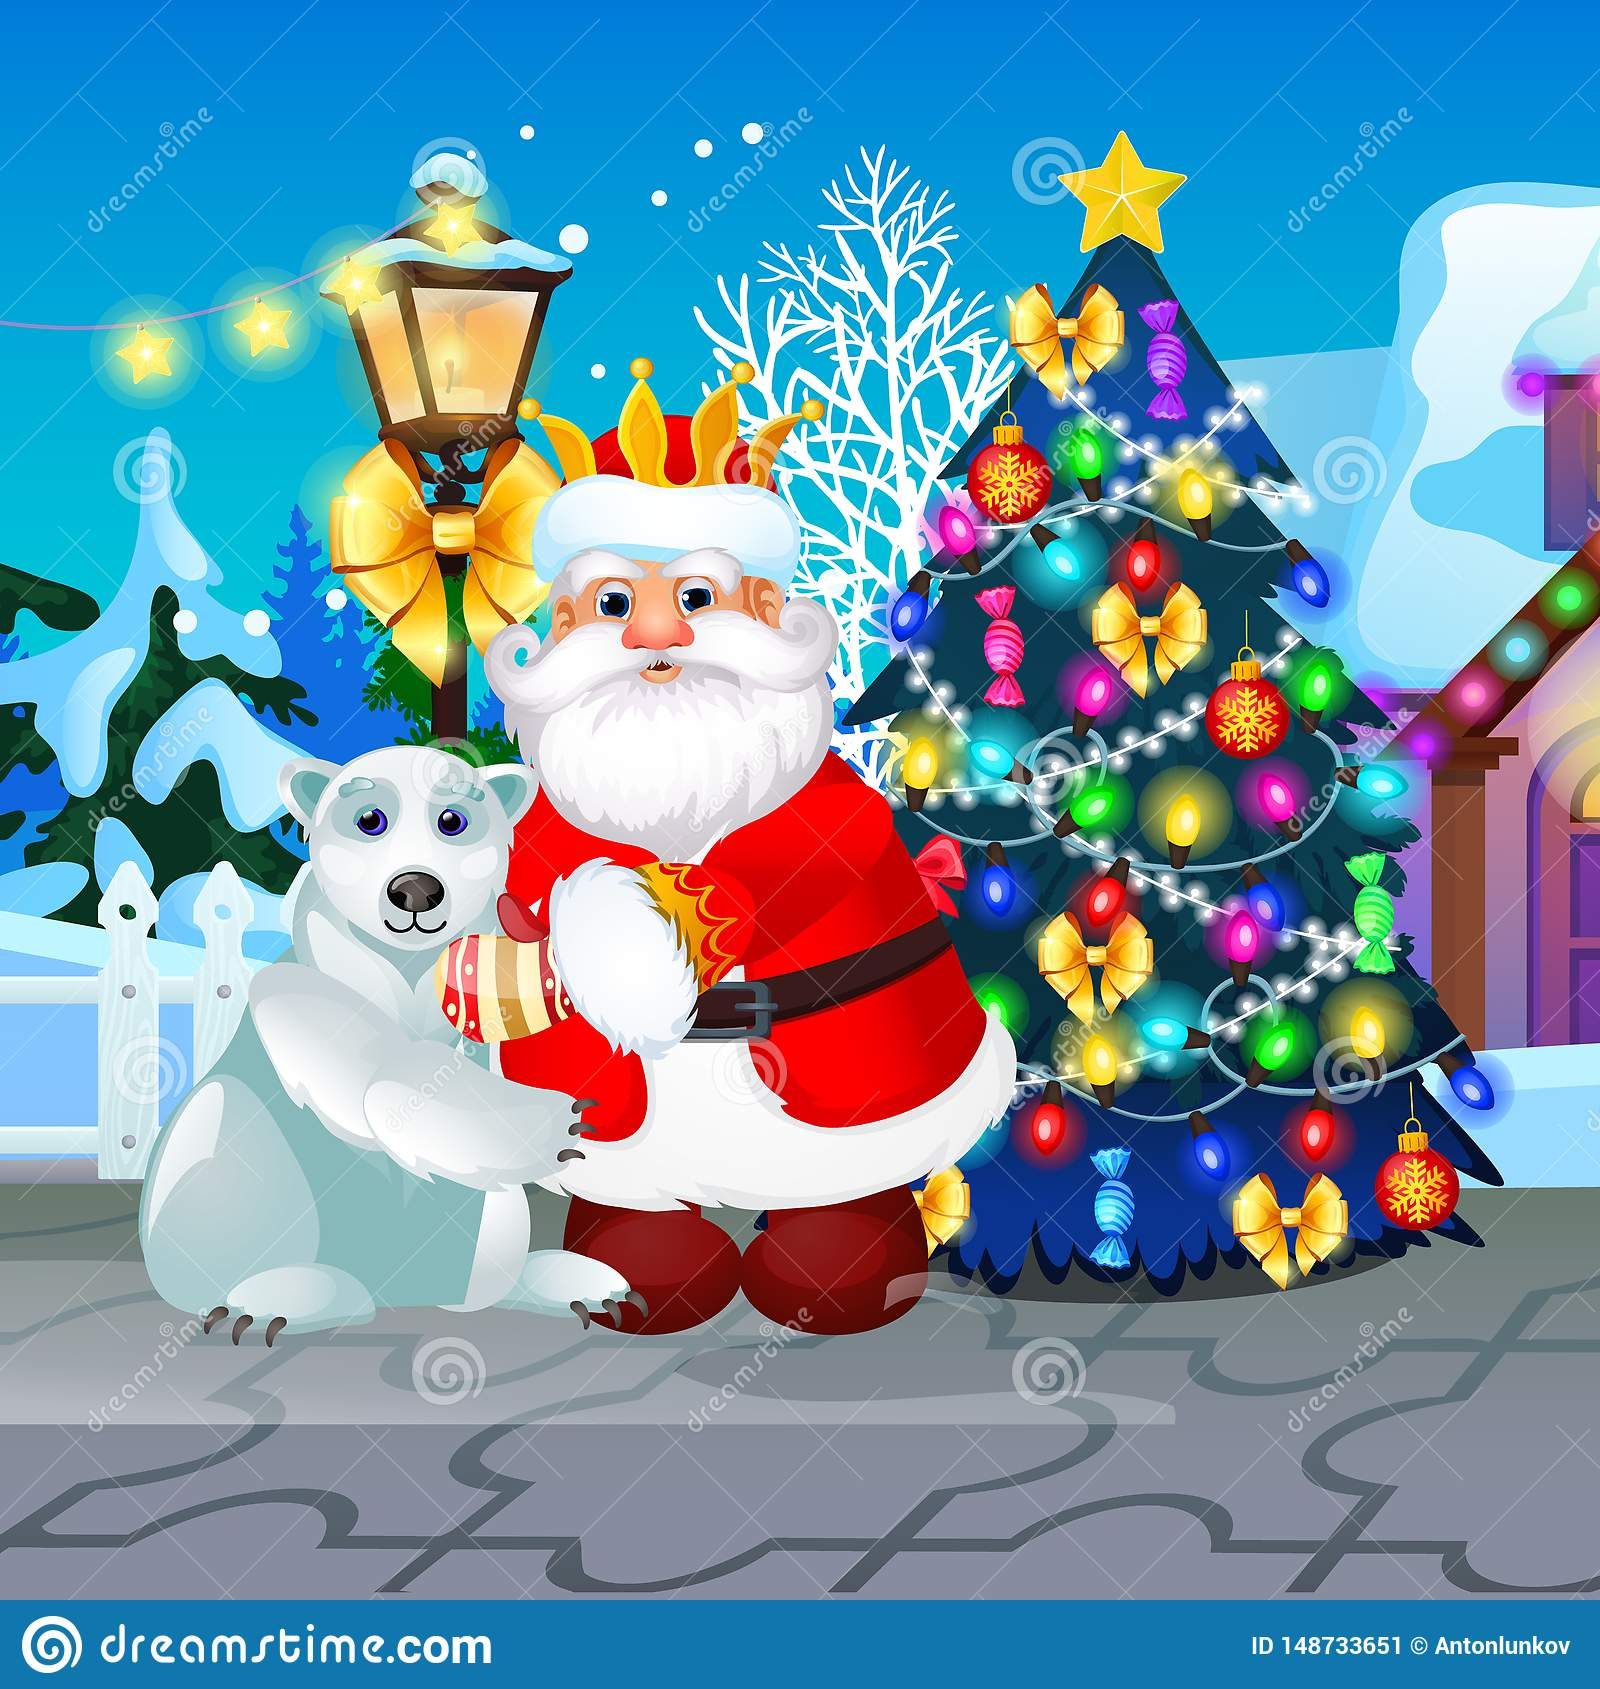 Christmas Celebration Cartoon Images.Decorated Christmas Tree Lamppost Animated Santa Claus And